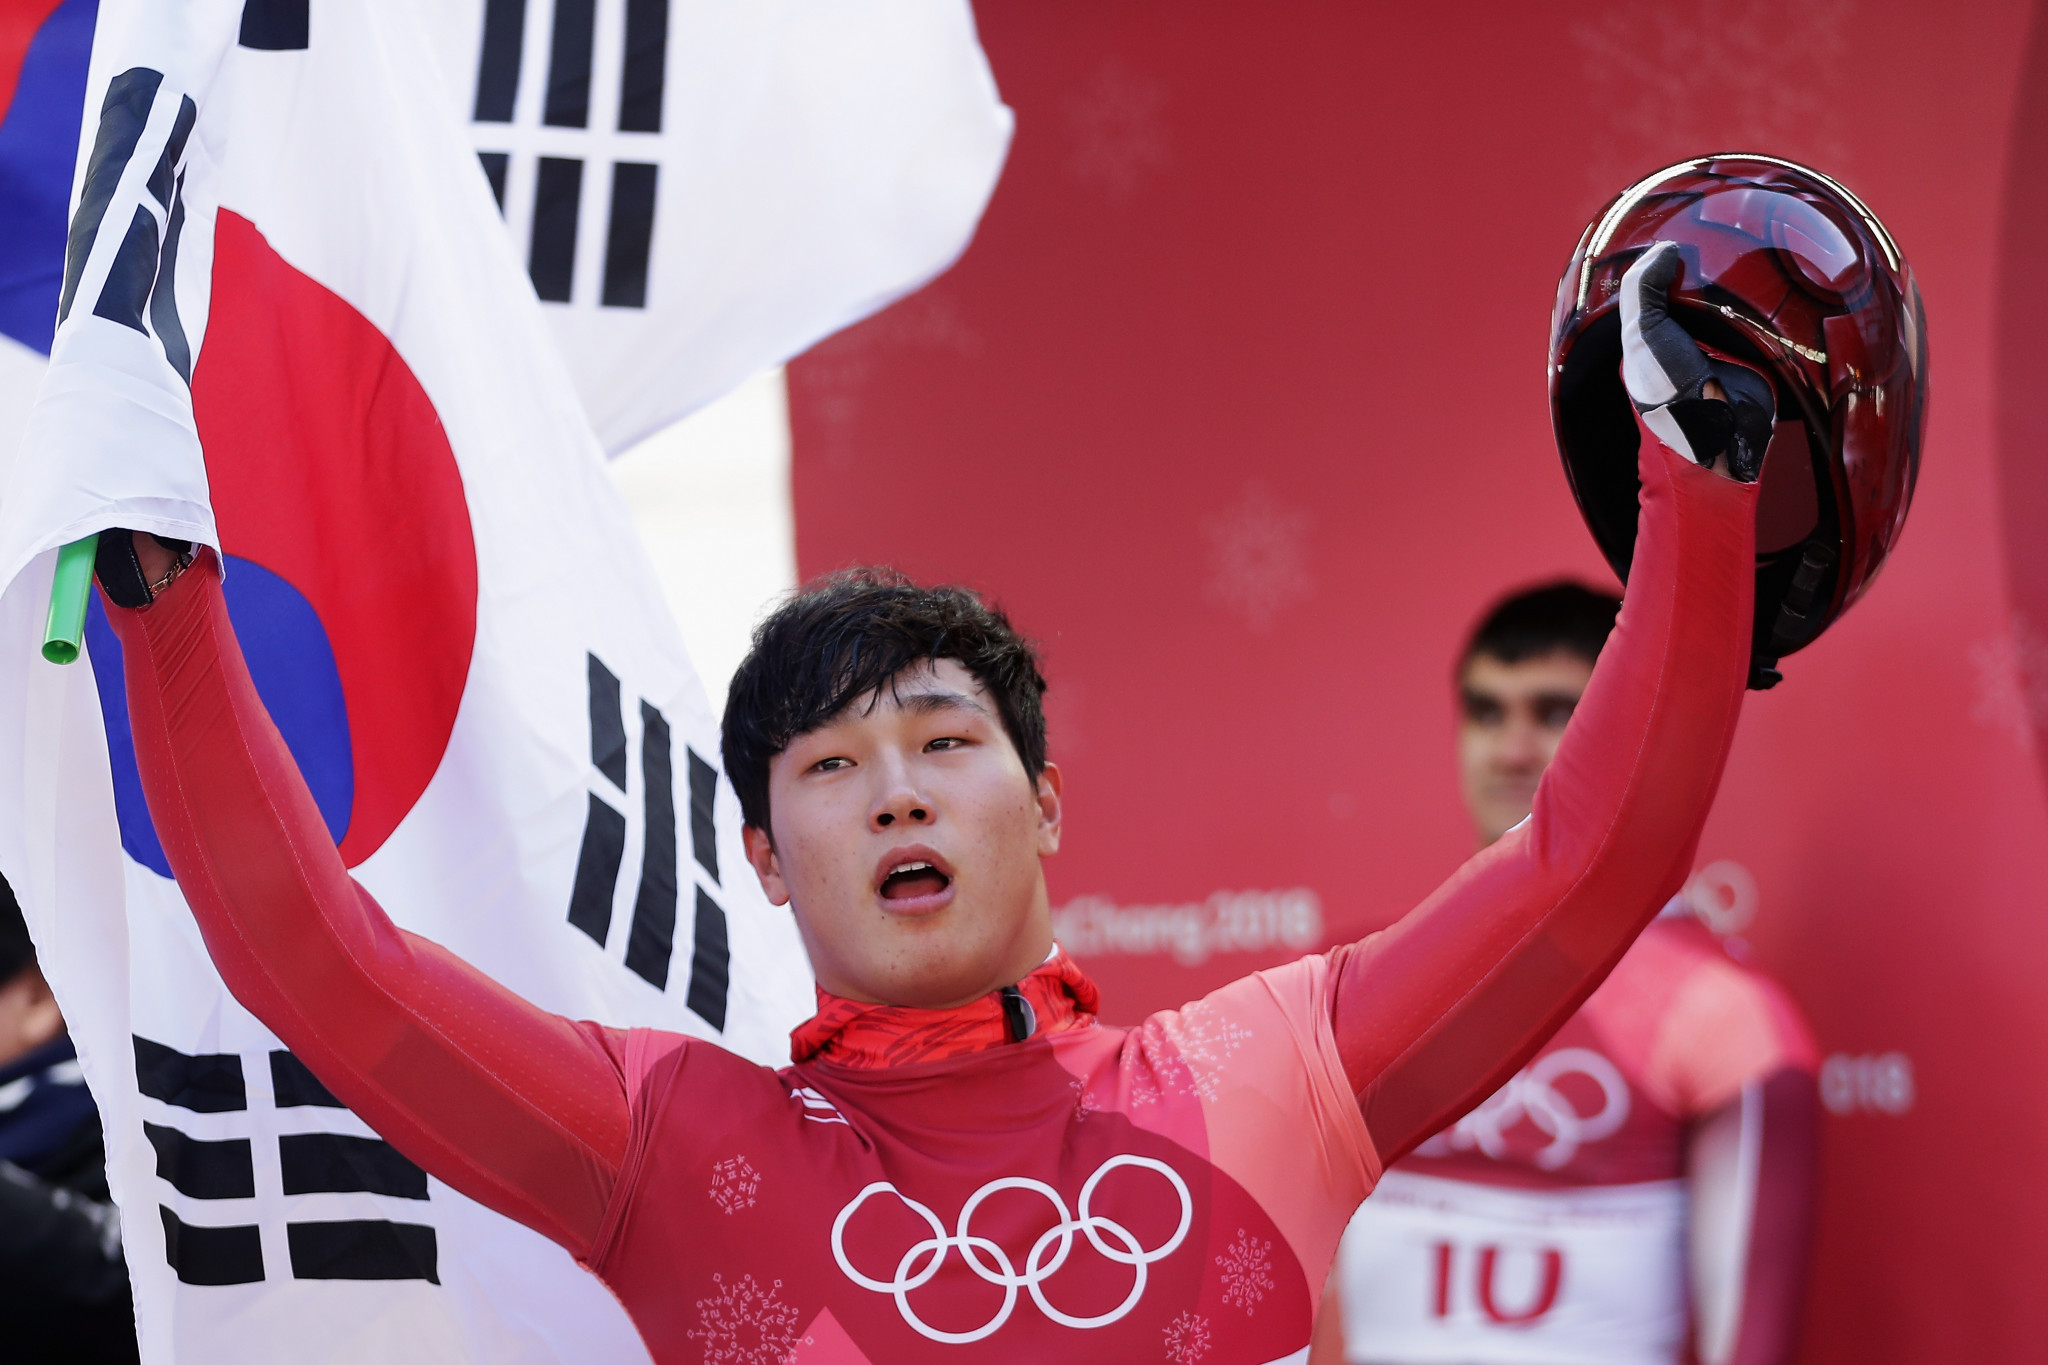 Yun Sungbin claimed hosts South Korea's second gold medal of the Pyeongchang 2018 Winter Olympic Games after winning the men's skeleton event today ©Getty Images